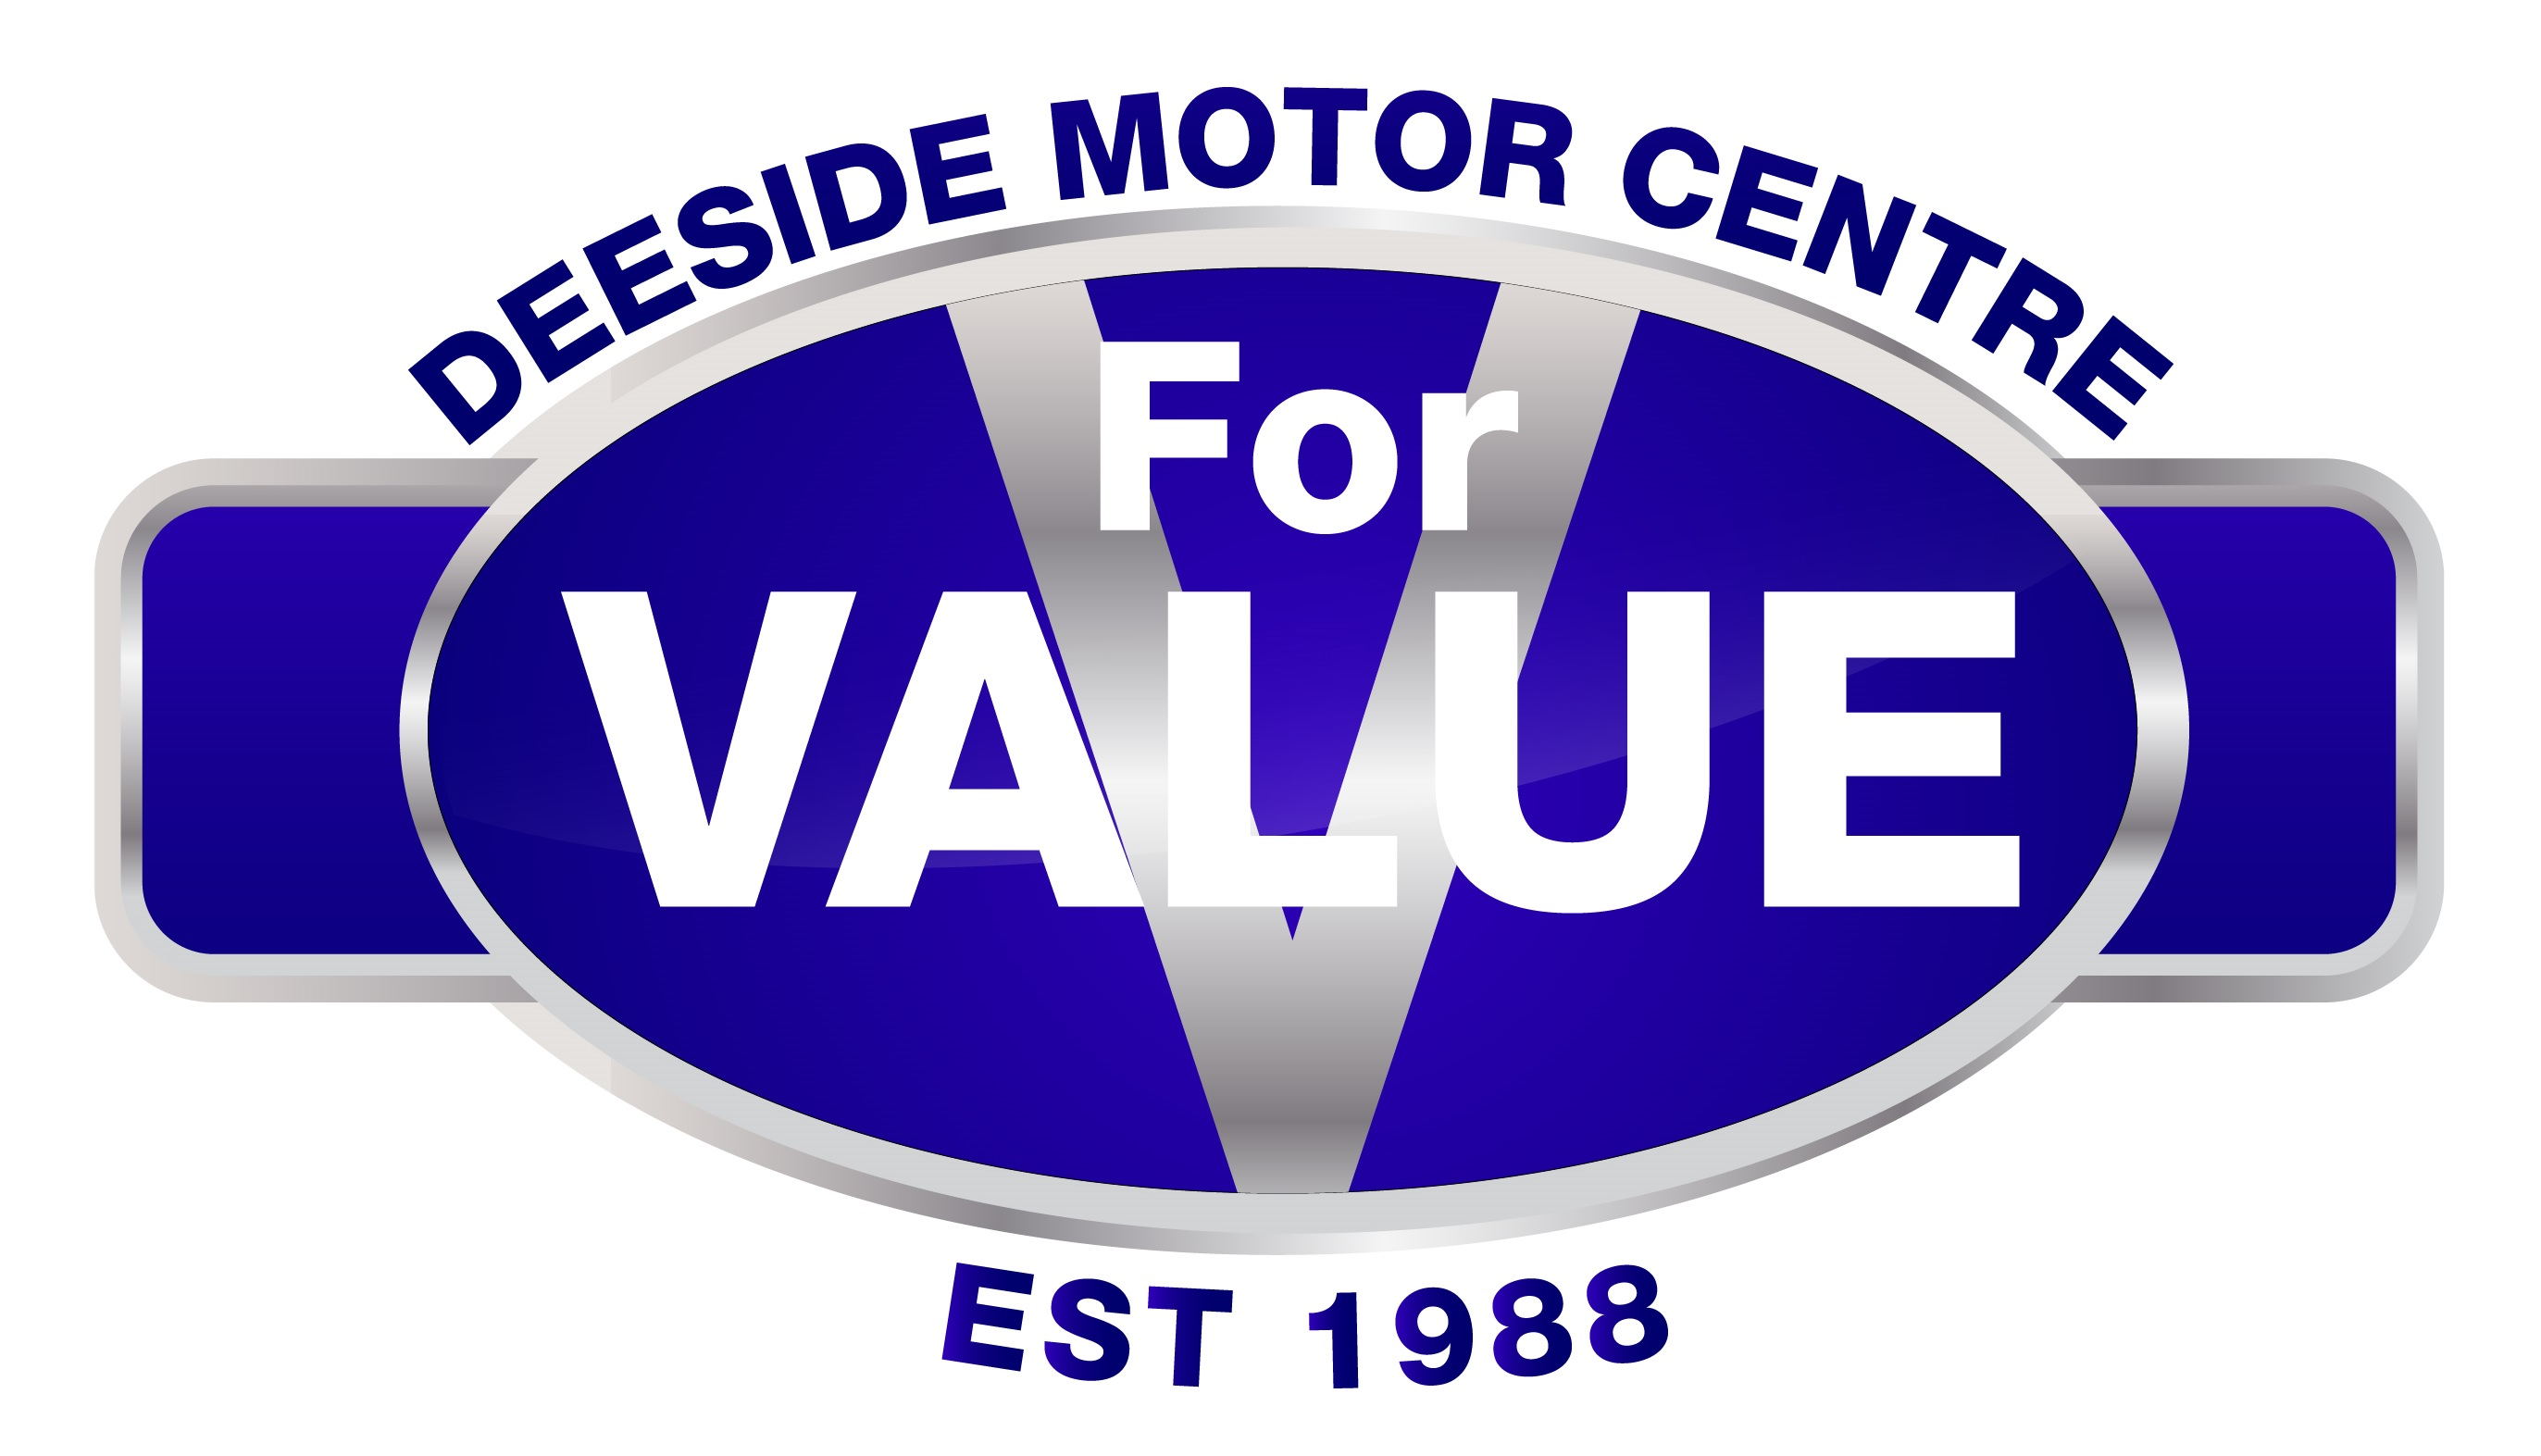 DEESIDE MOTOR CENTRE LTD